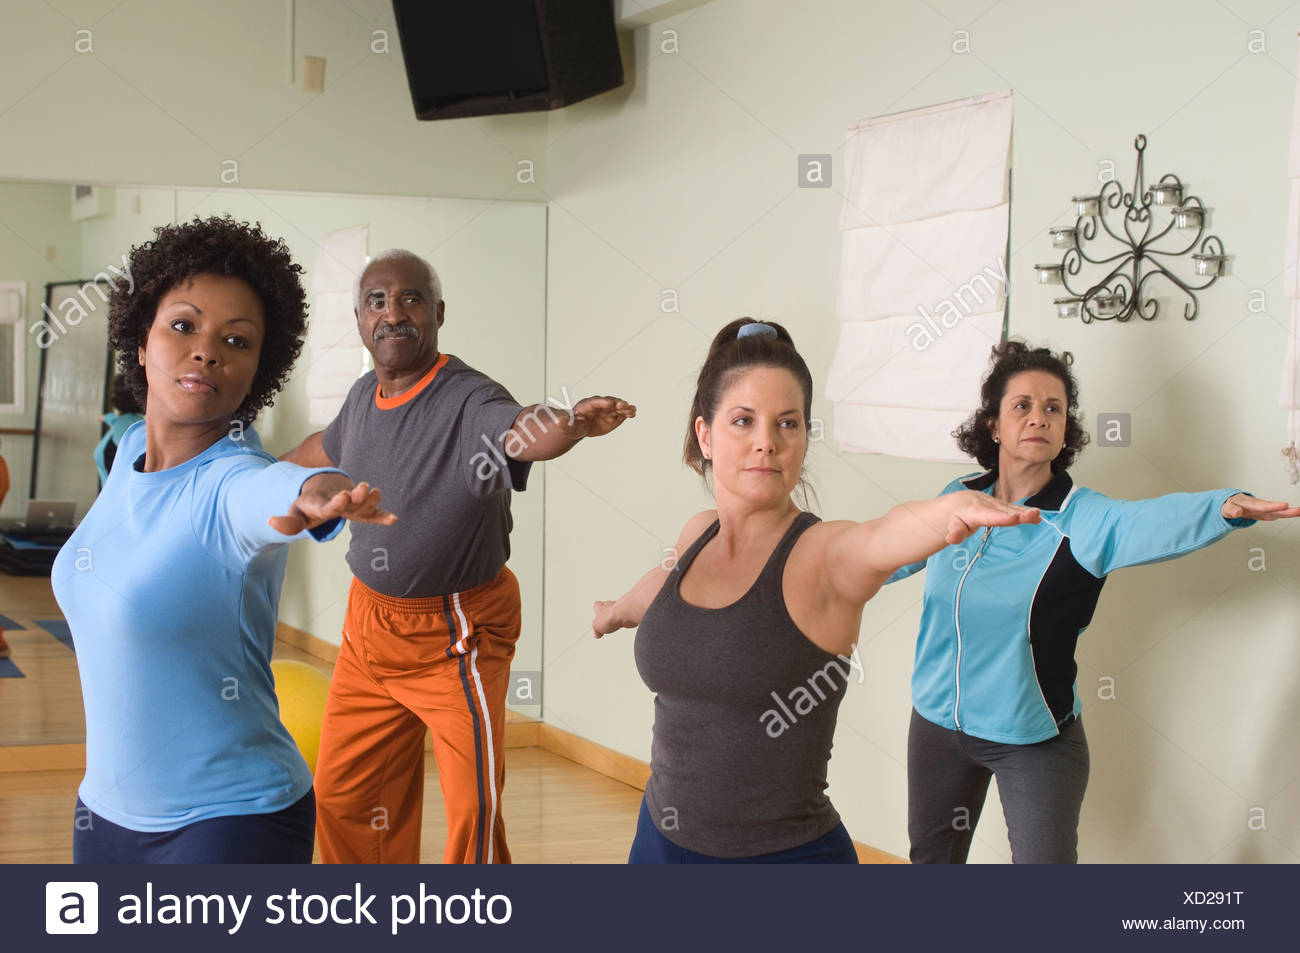 Stretching in Yoga Class - Stock Image